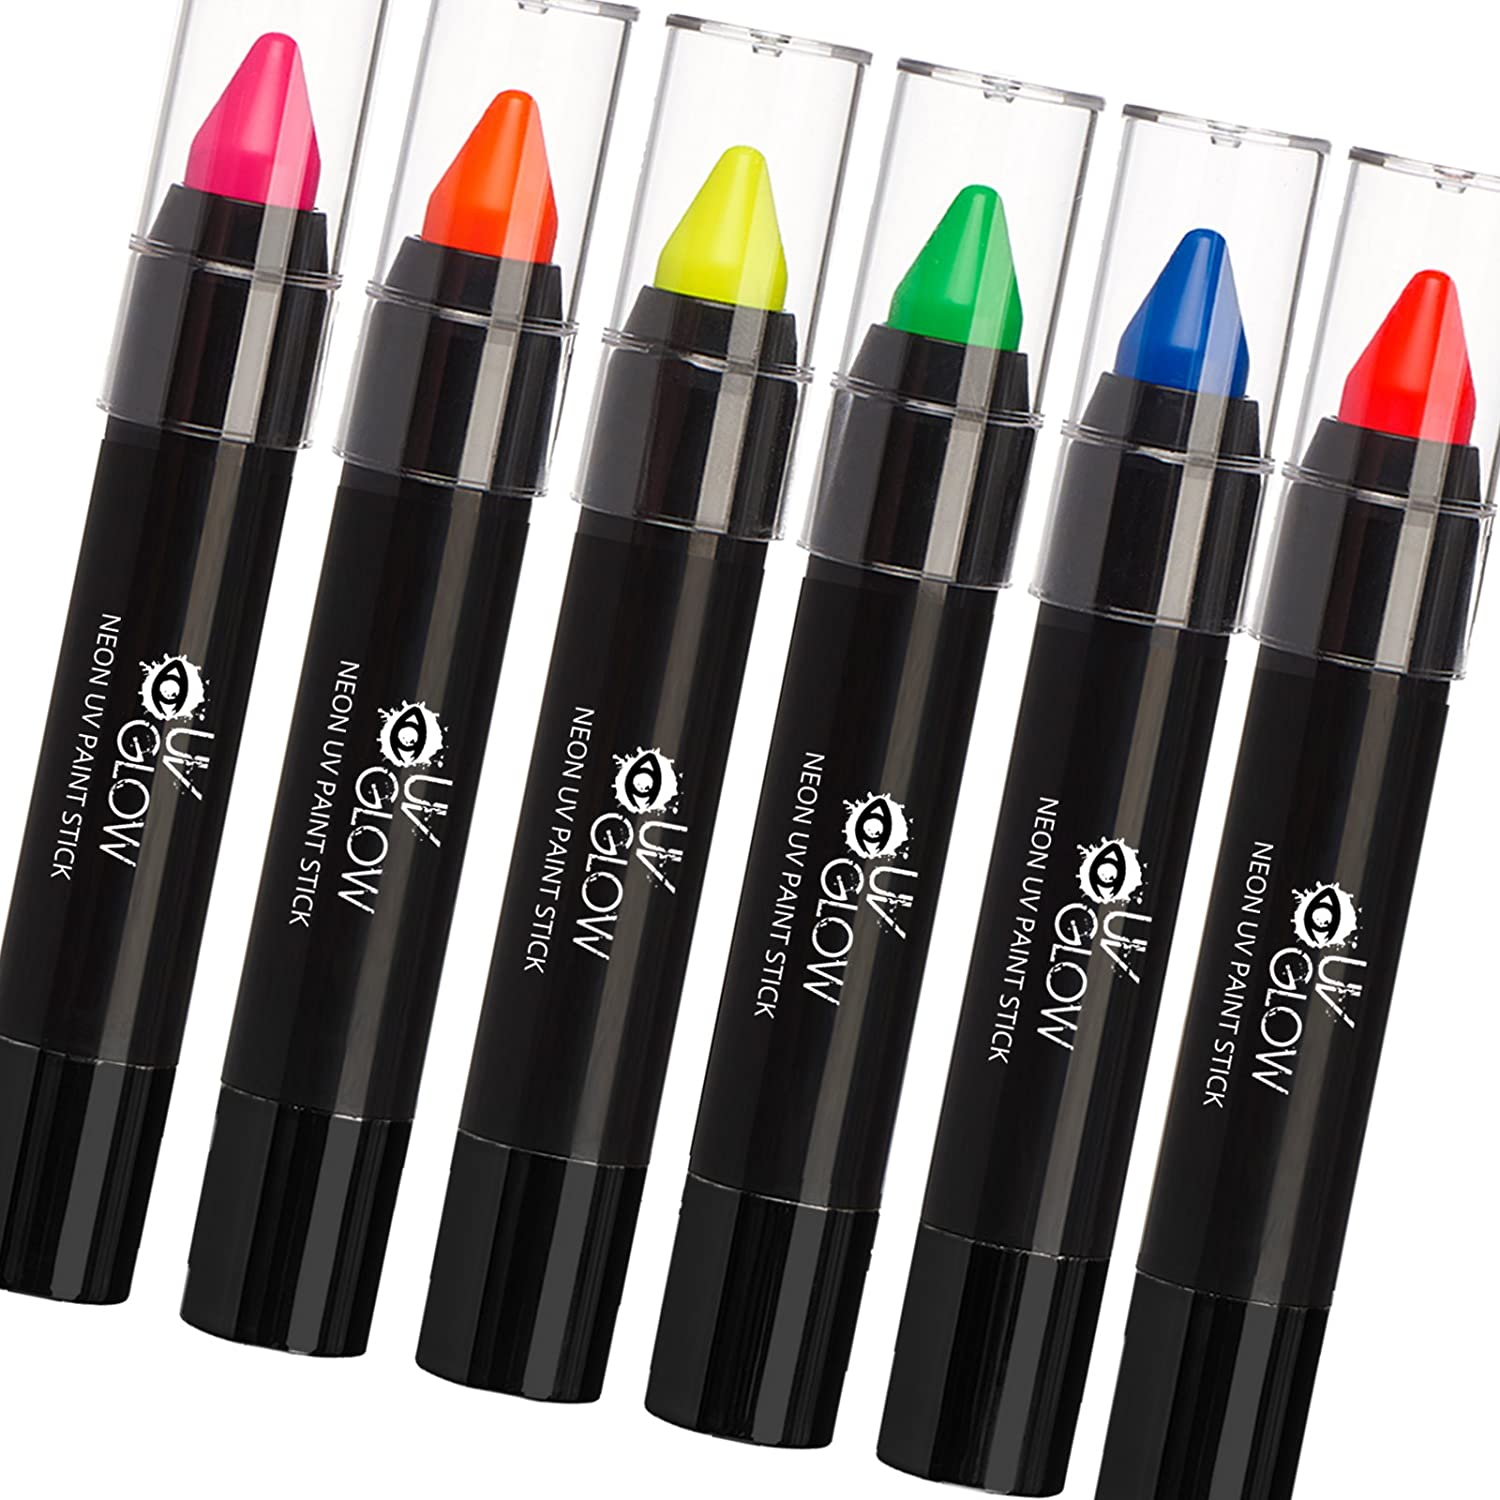 UV Glow - Neon UV Paint Stick / Face & Body Crayon - Set of 6 Colours. Genuine and original UV Glow product - glows brightly under UV Light! MPPST30